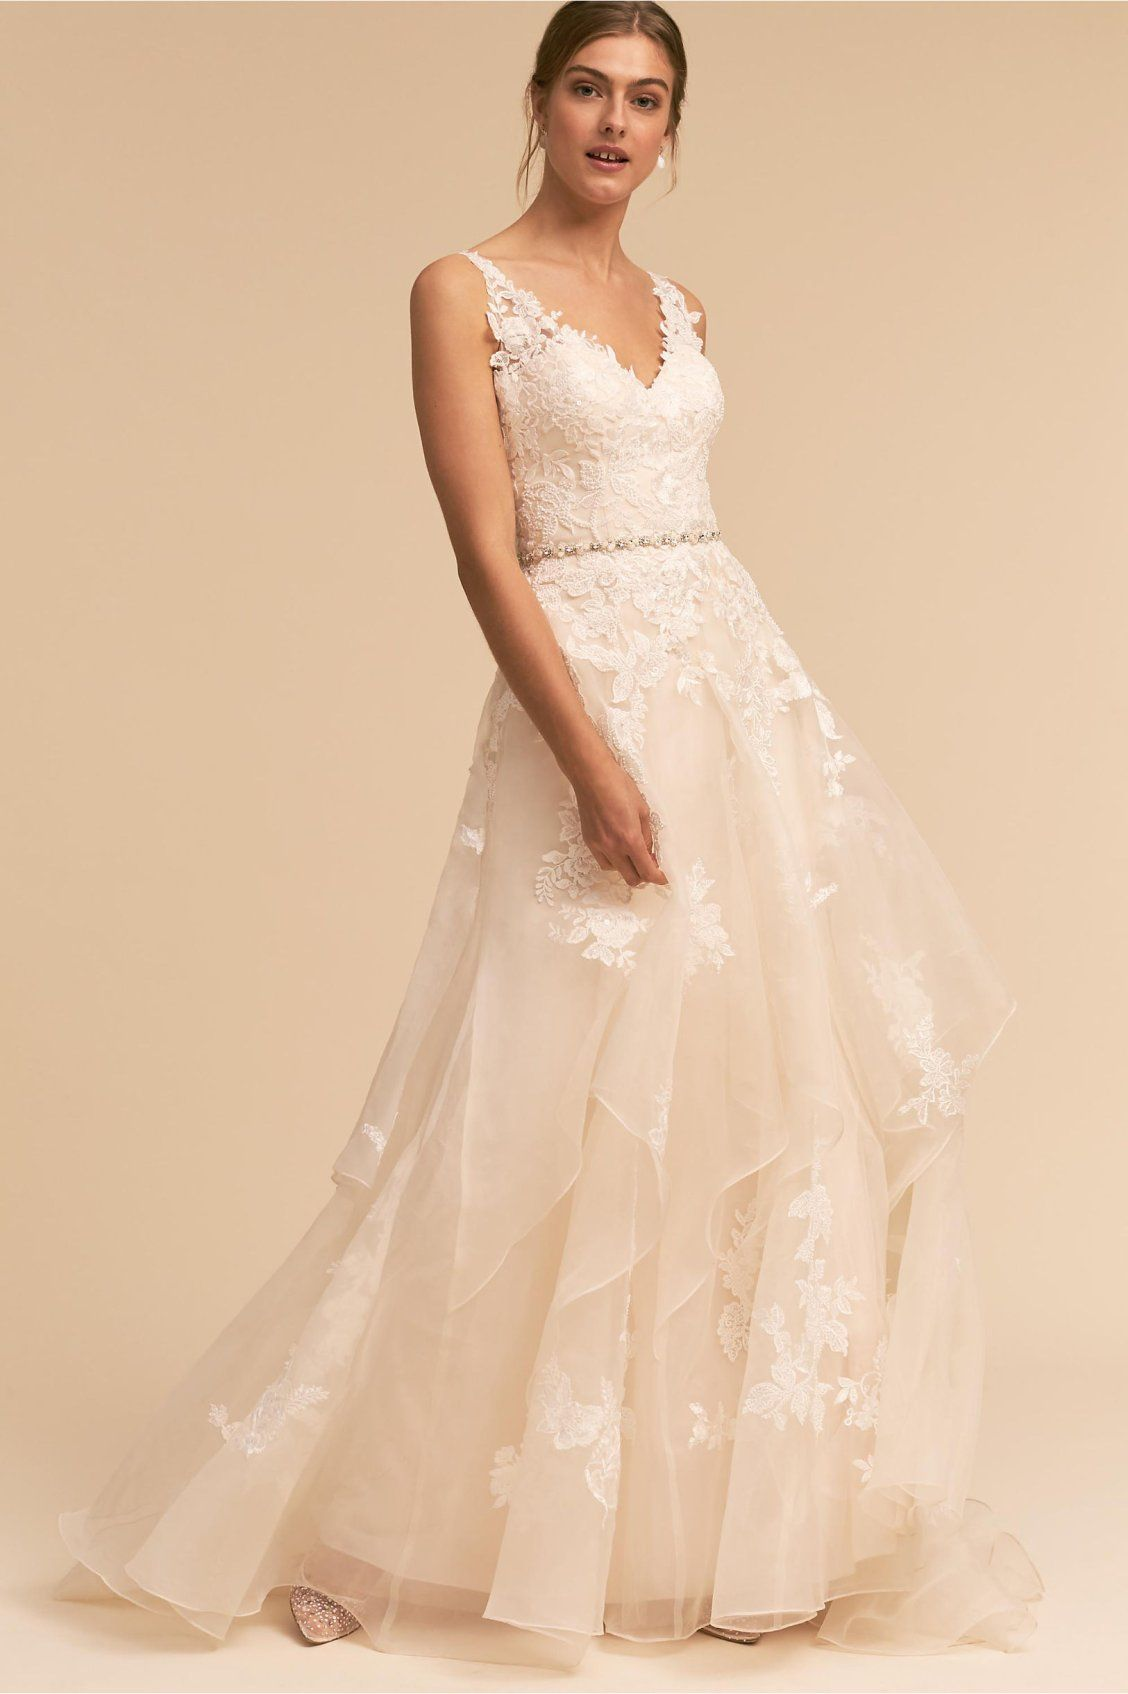 a49fea8209 Ever After Gown from BHLDN